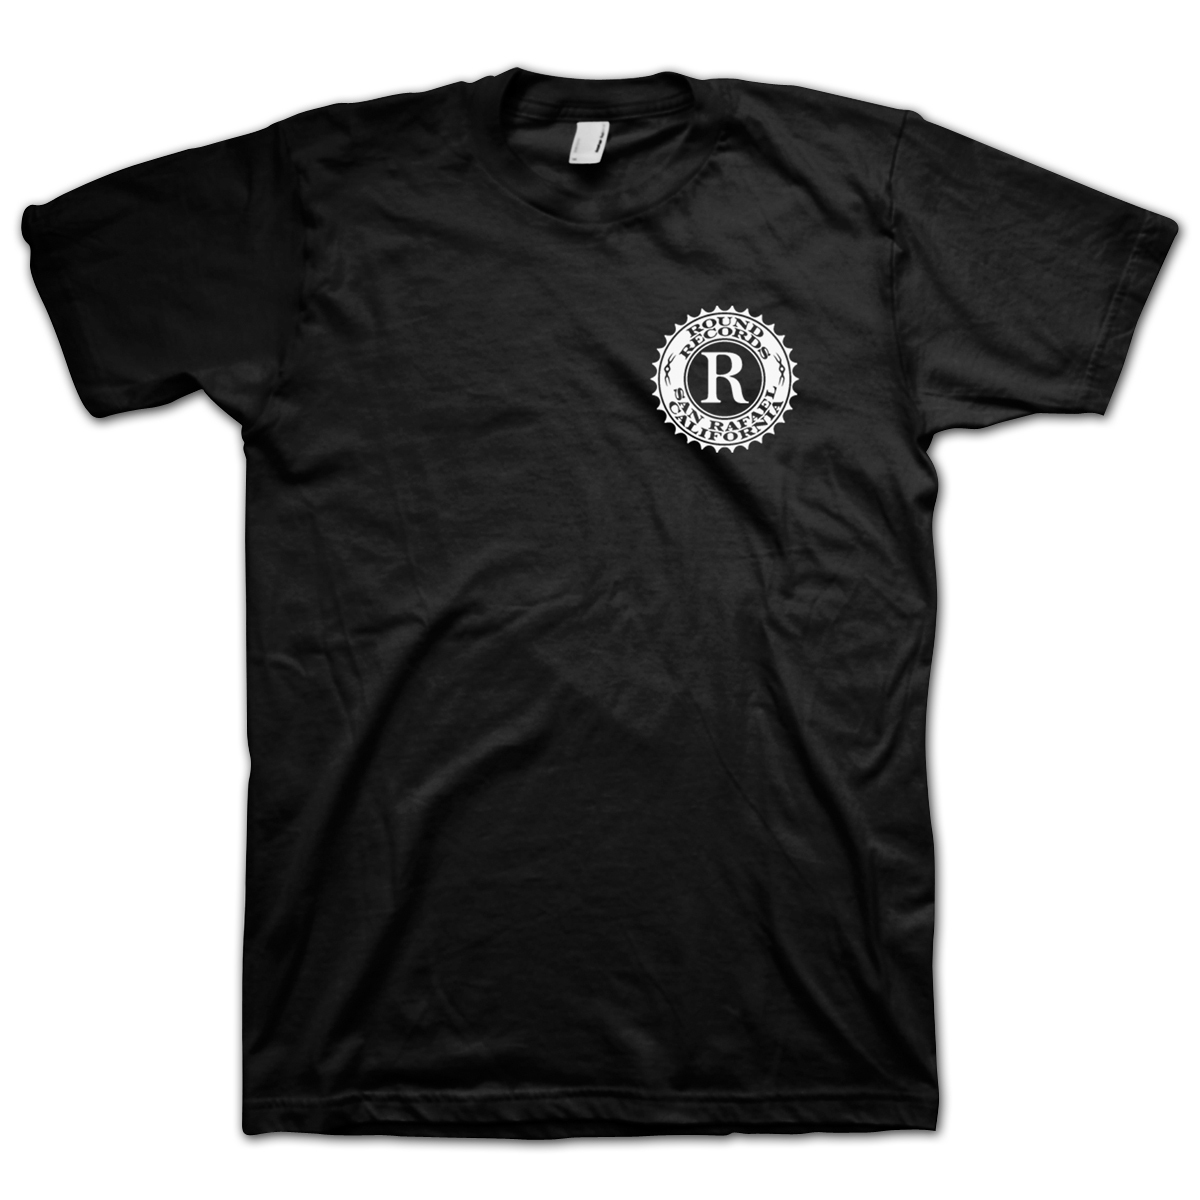 Jerry Garcia Round Records T-shirt